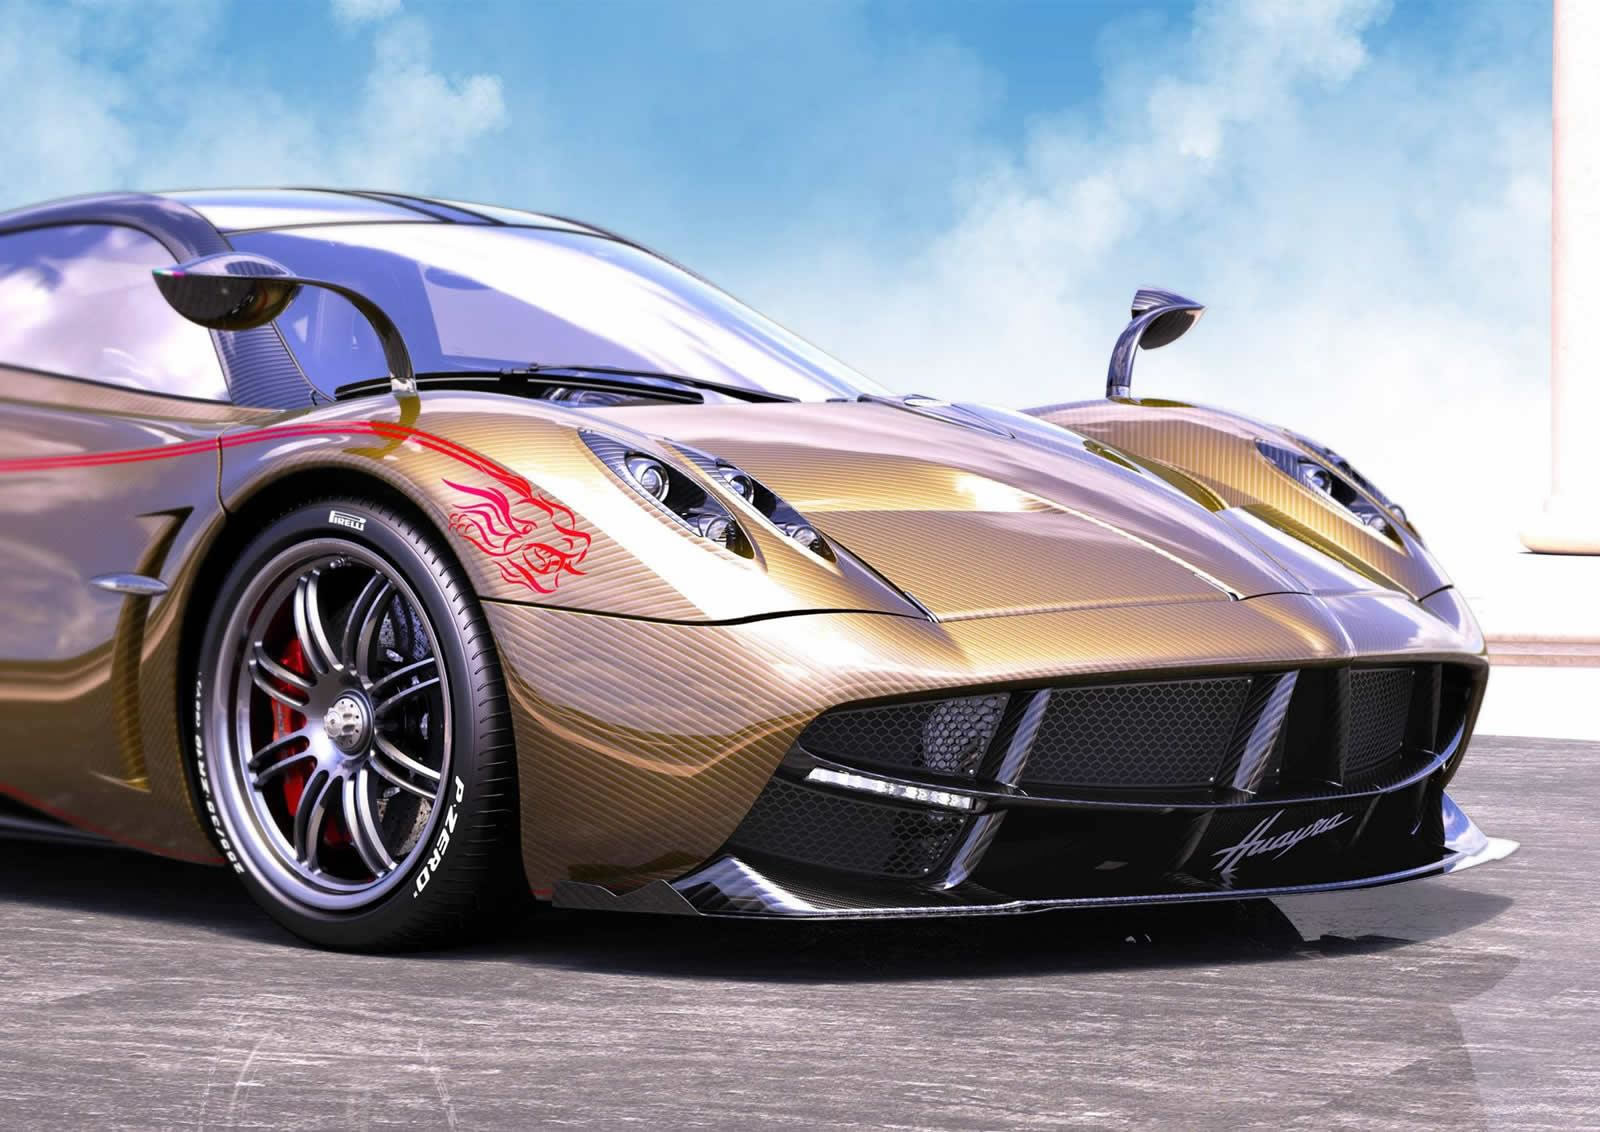 A limited edition Pagani Huayra Dinastia created exclusively for China : Luxurylaunches